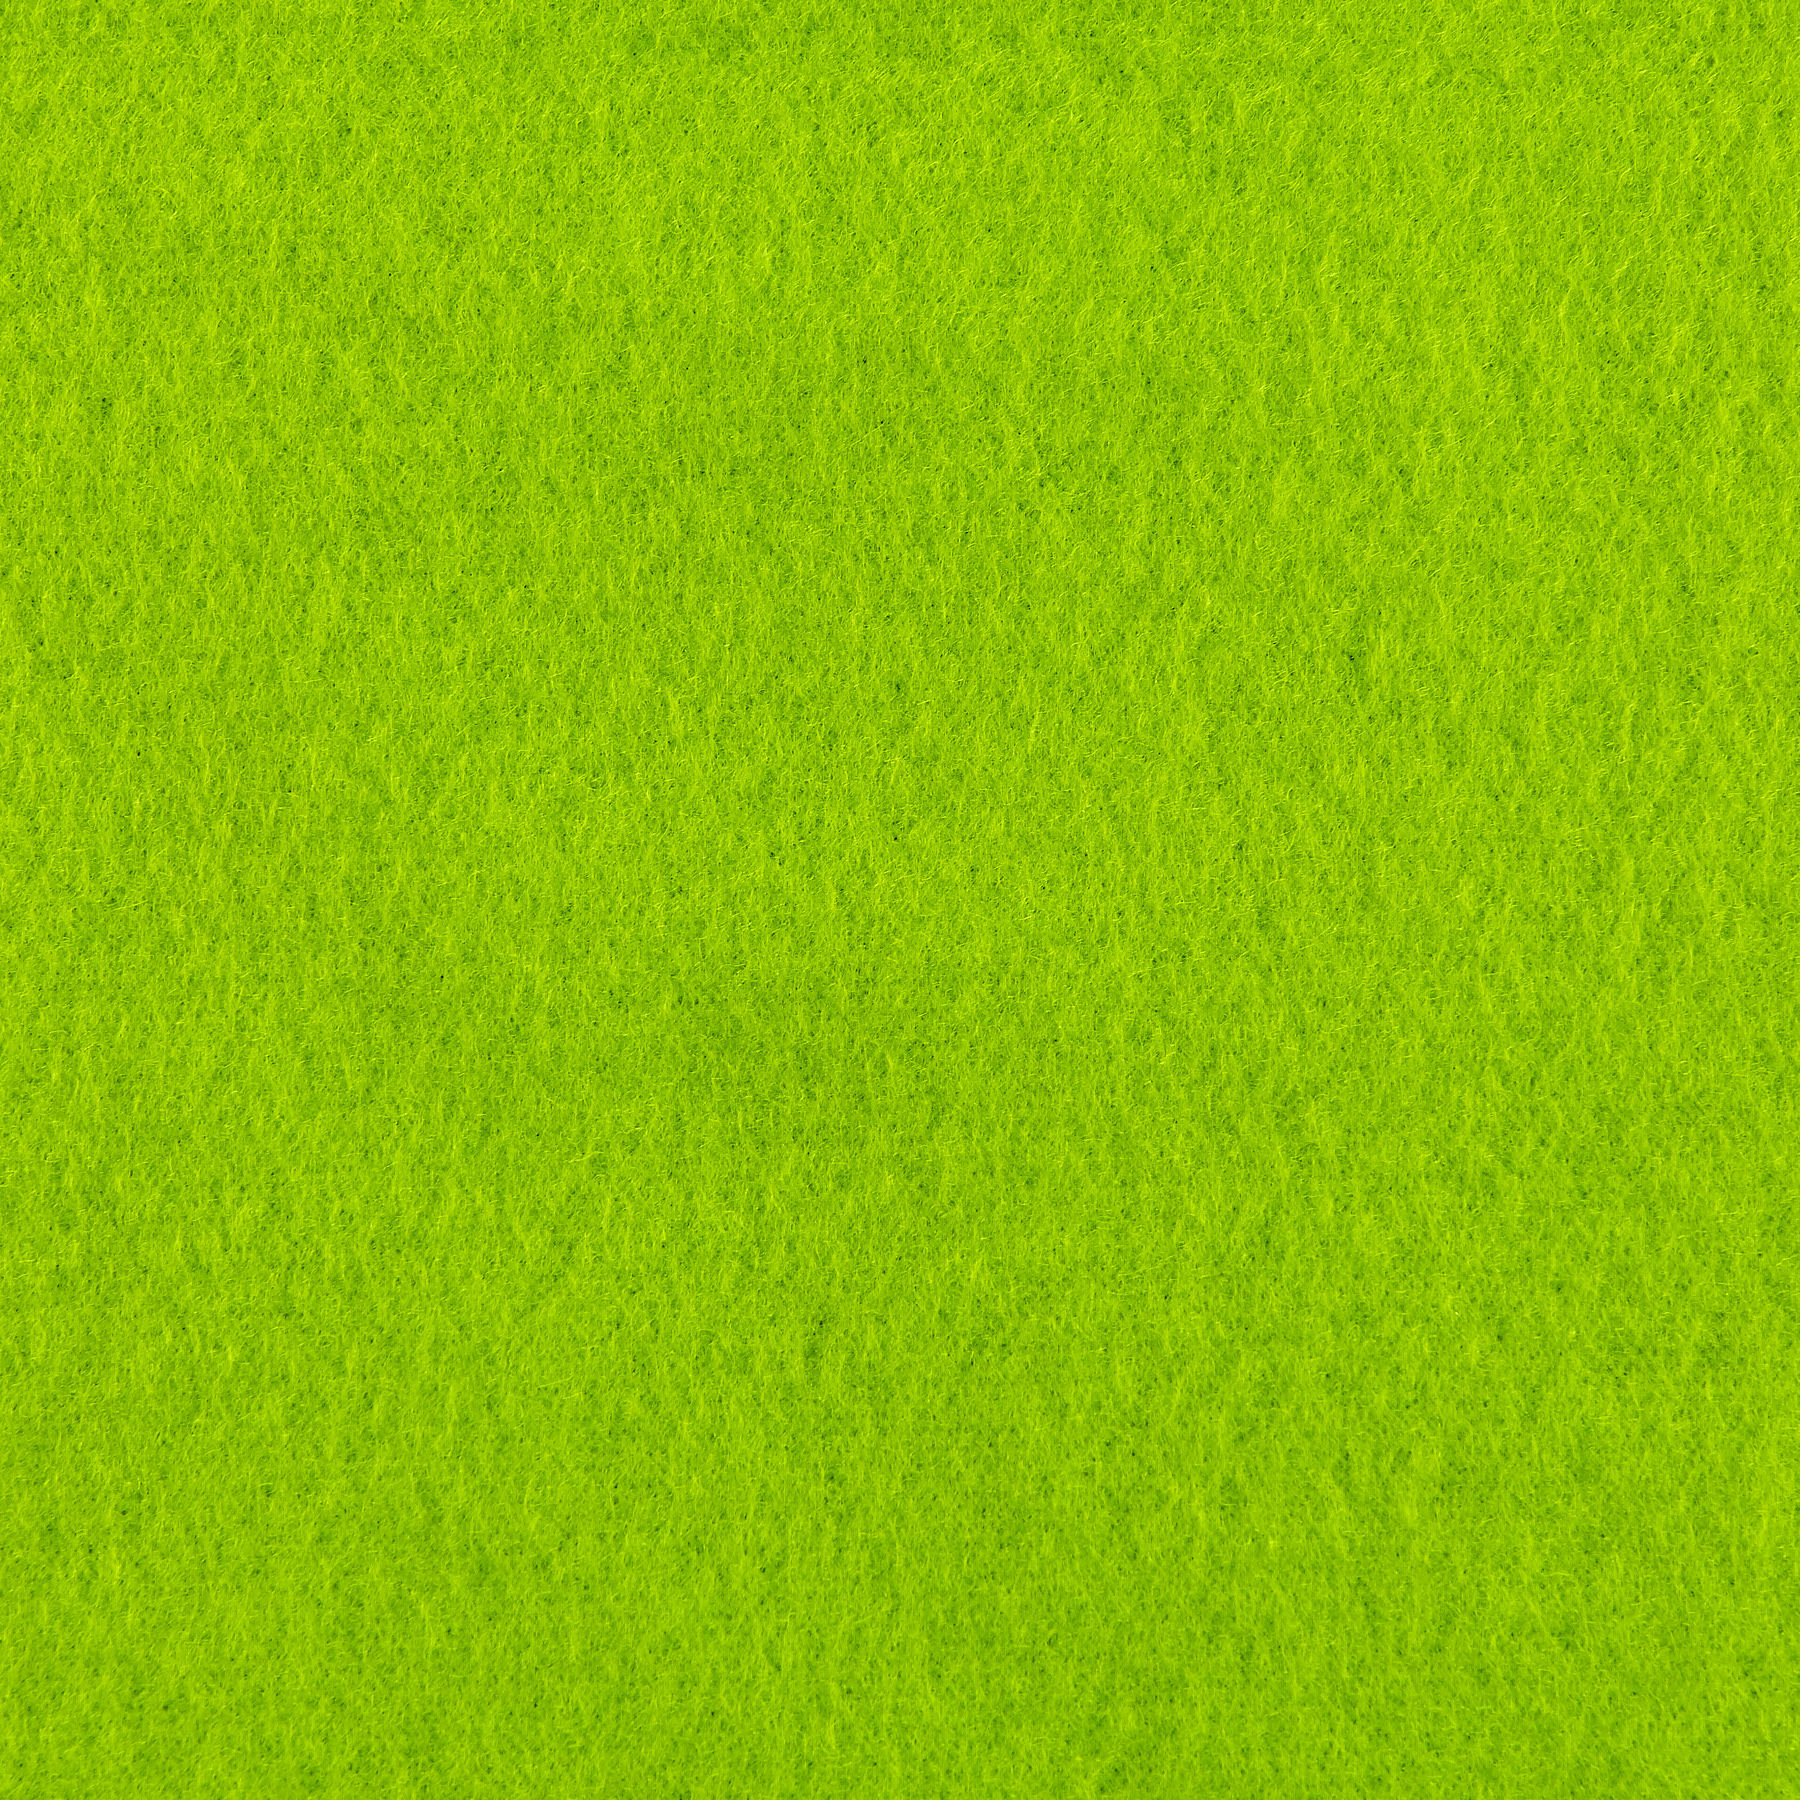 Polar Fleece Solid Lime Fabric by Newcastle in USA